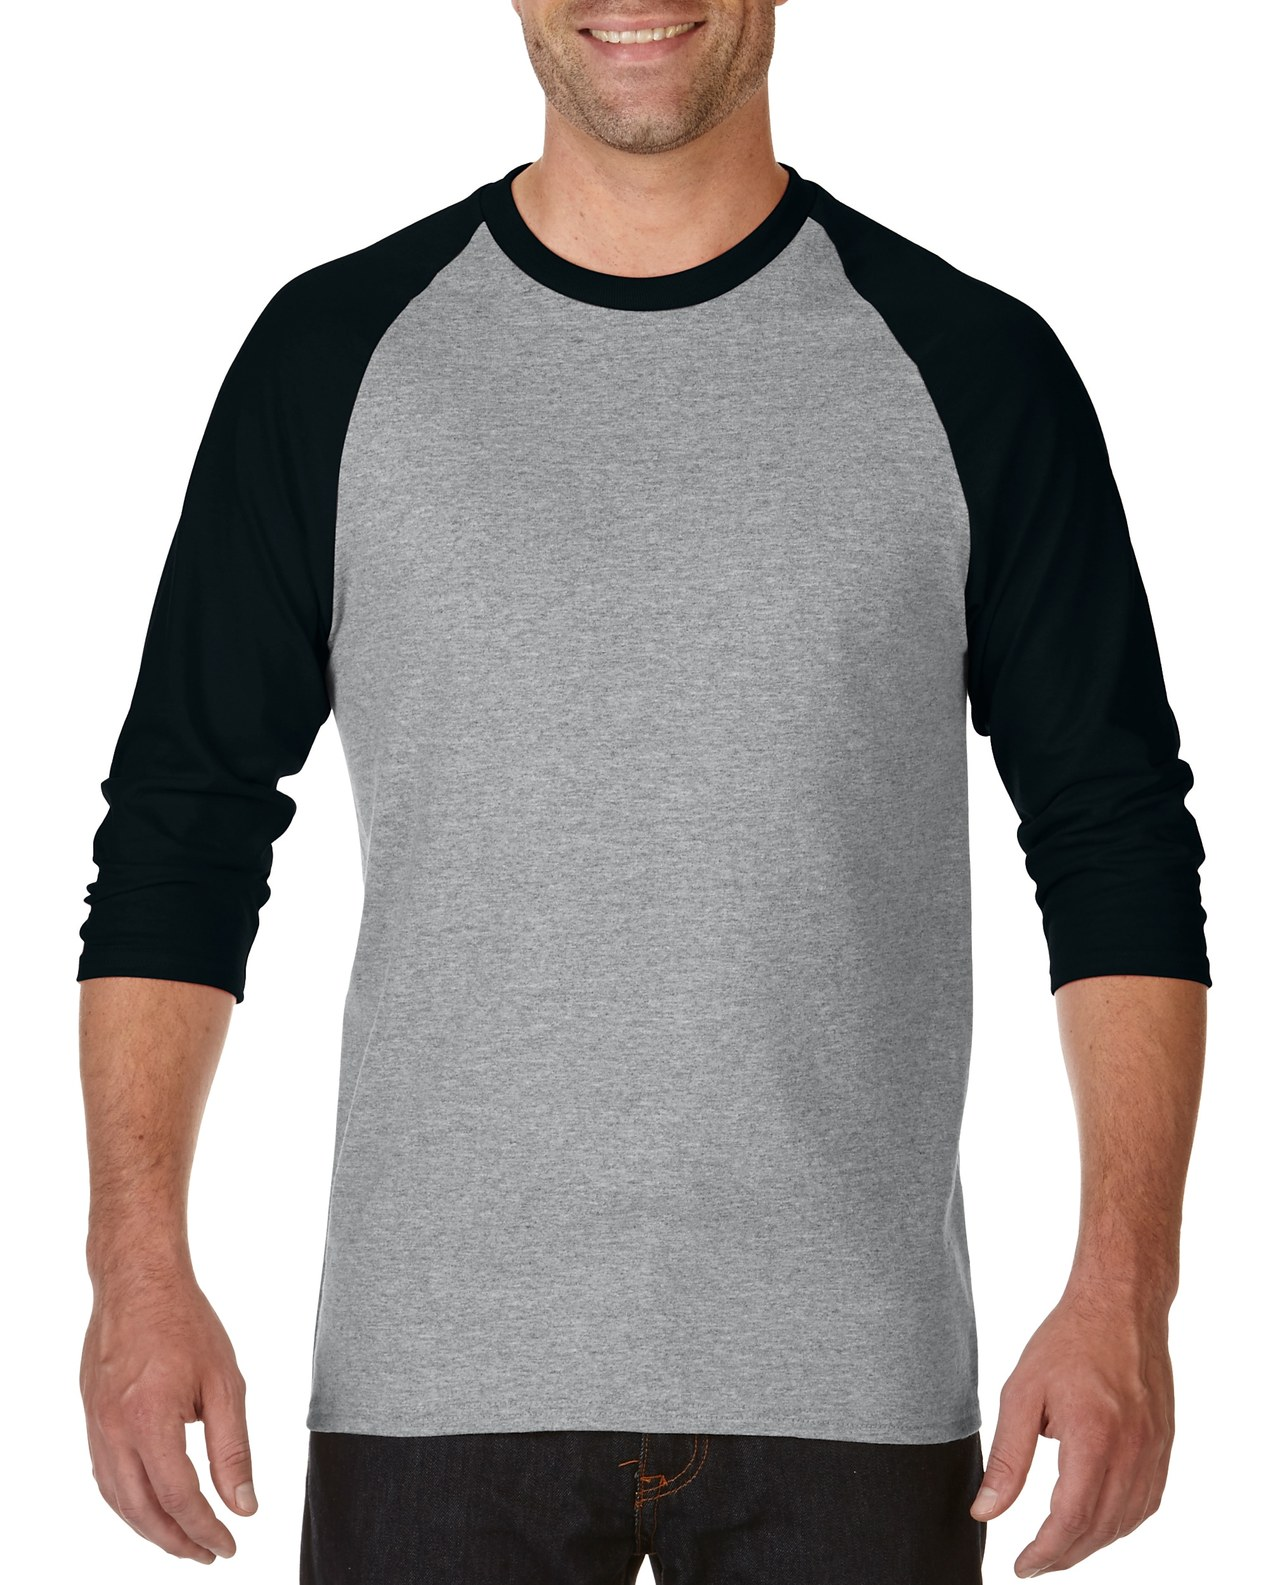 Gildan Mens Heavy Cotton 3/4 Raglan Tee